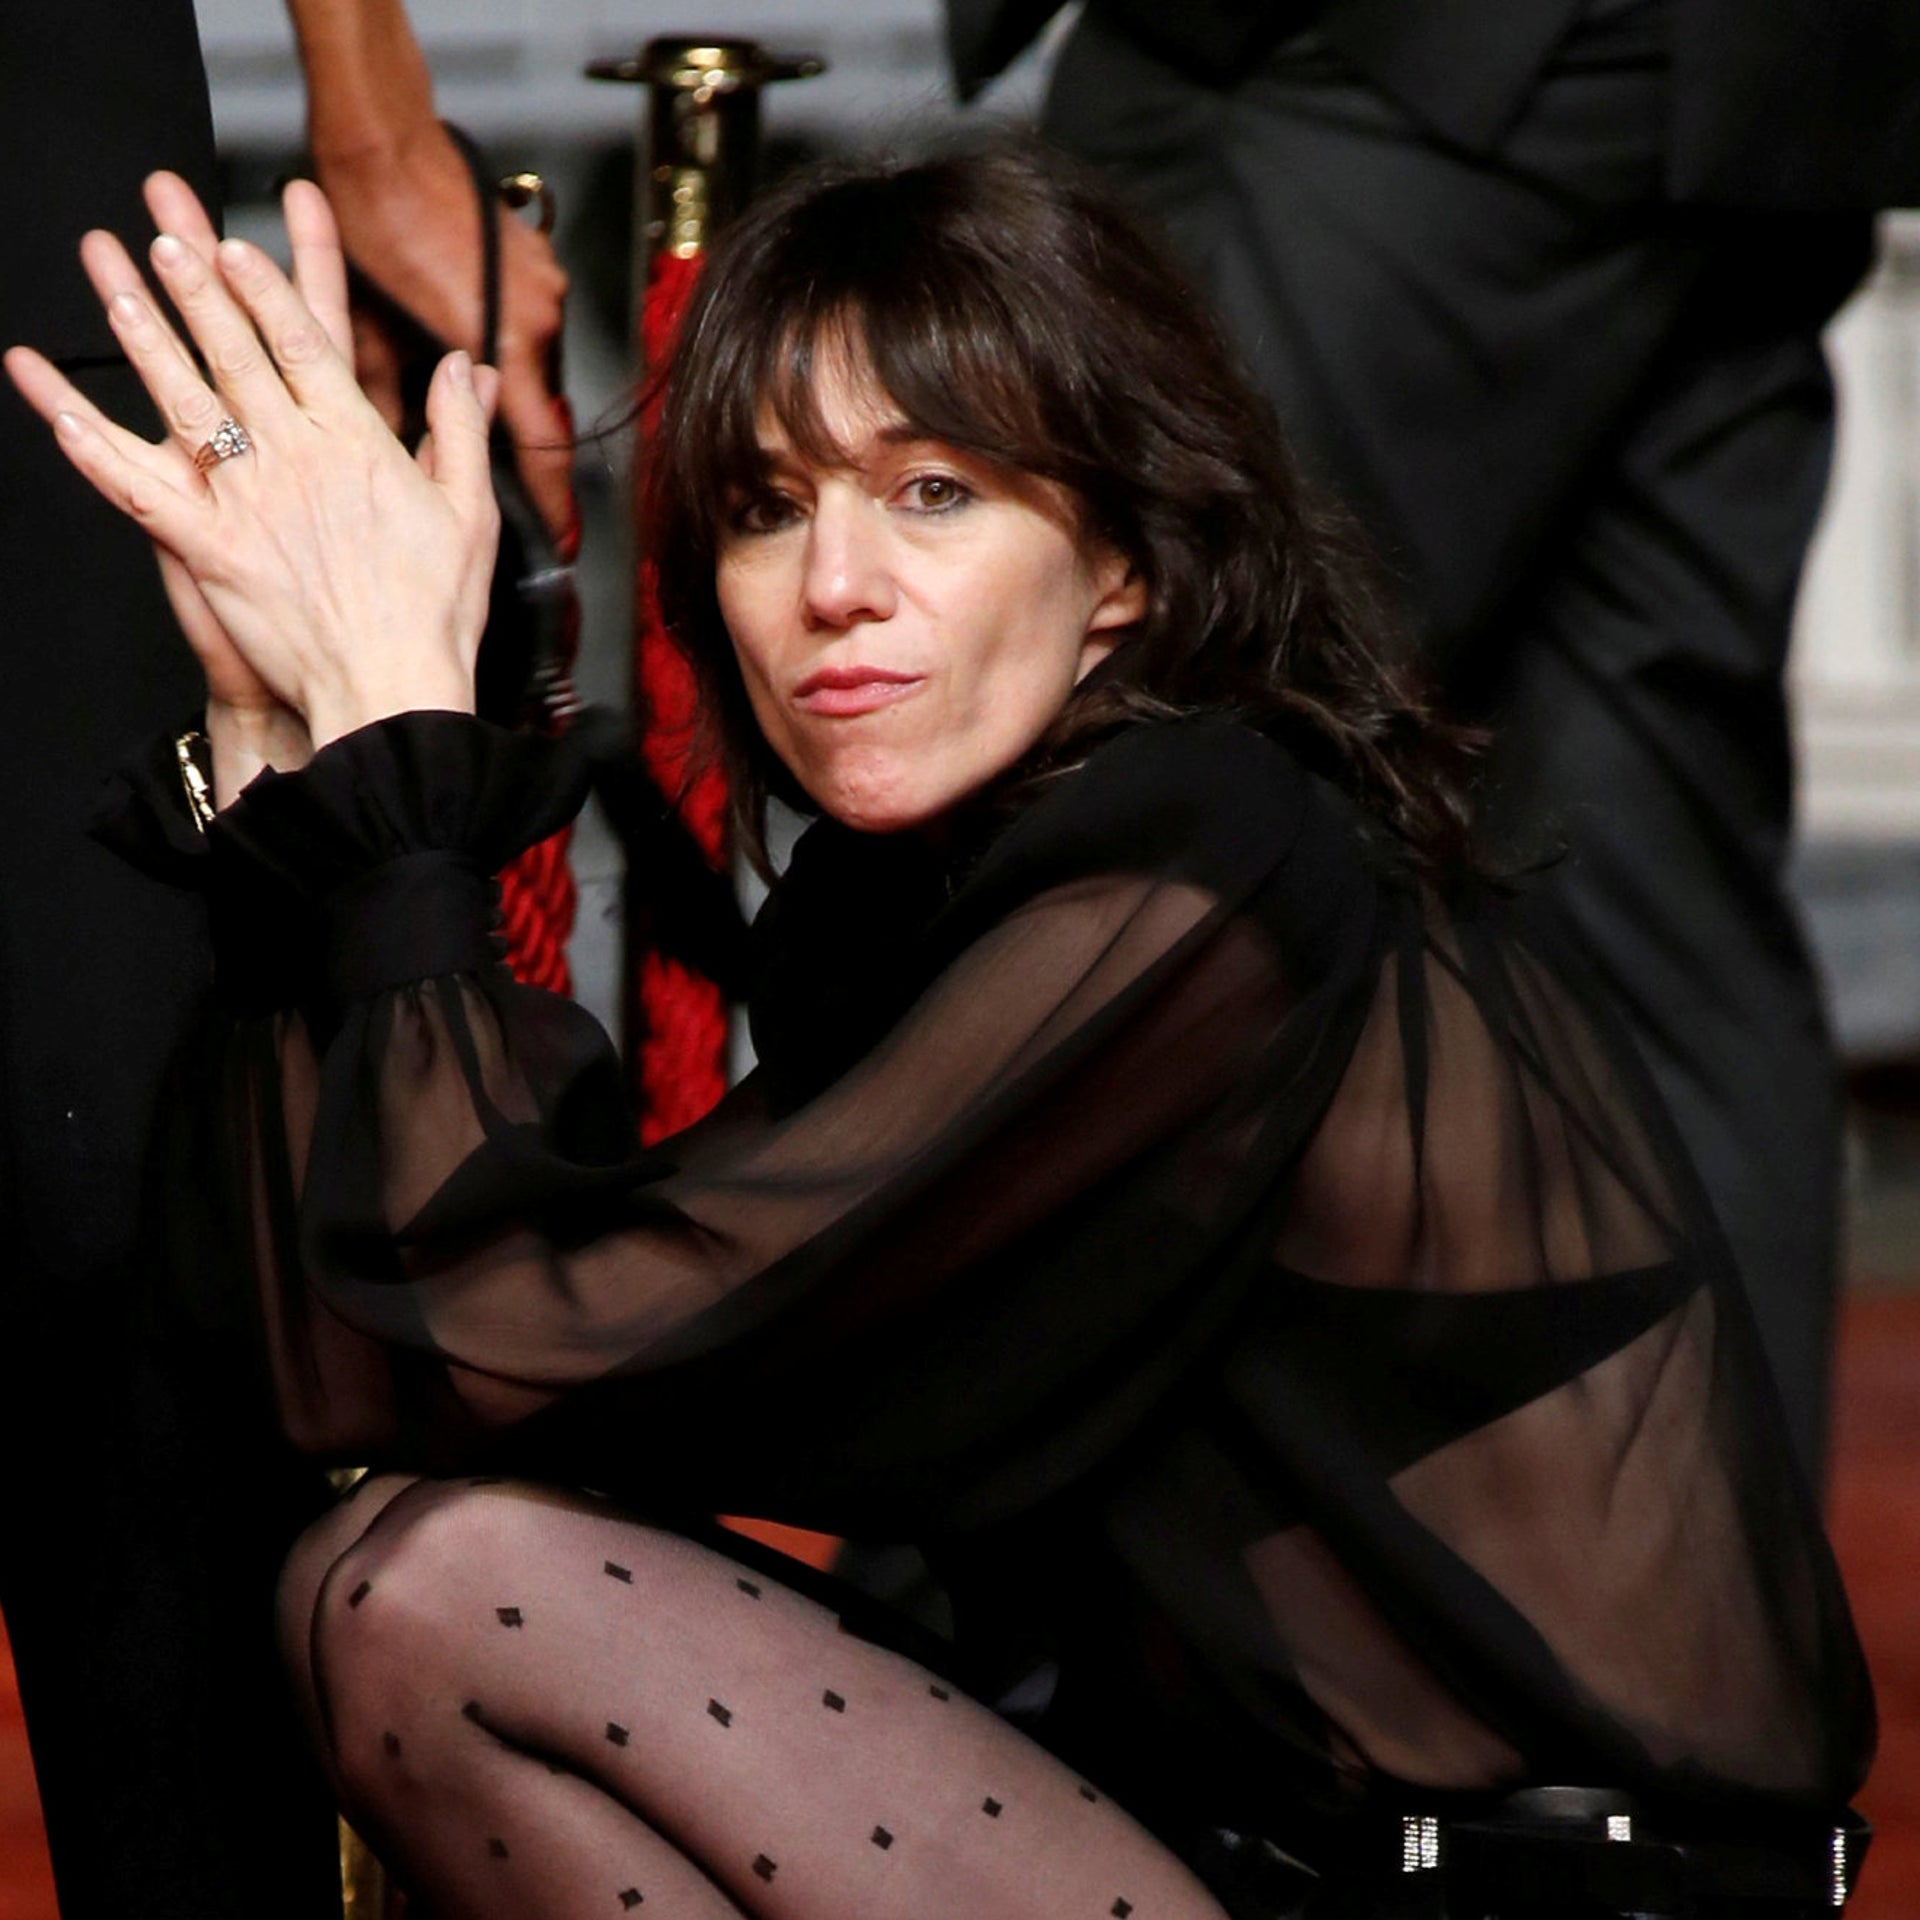 Charlotte Gainsbourg at Cannes in 2019.